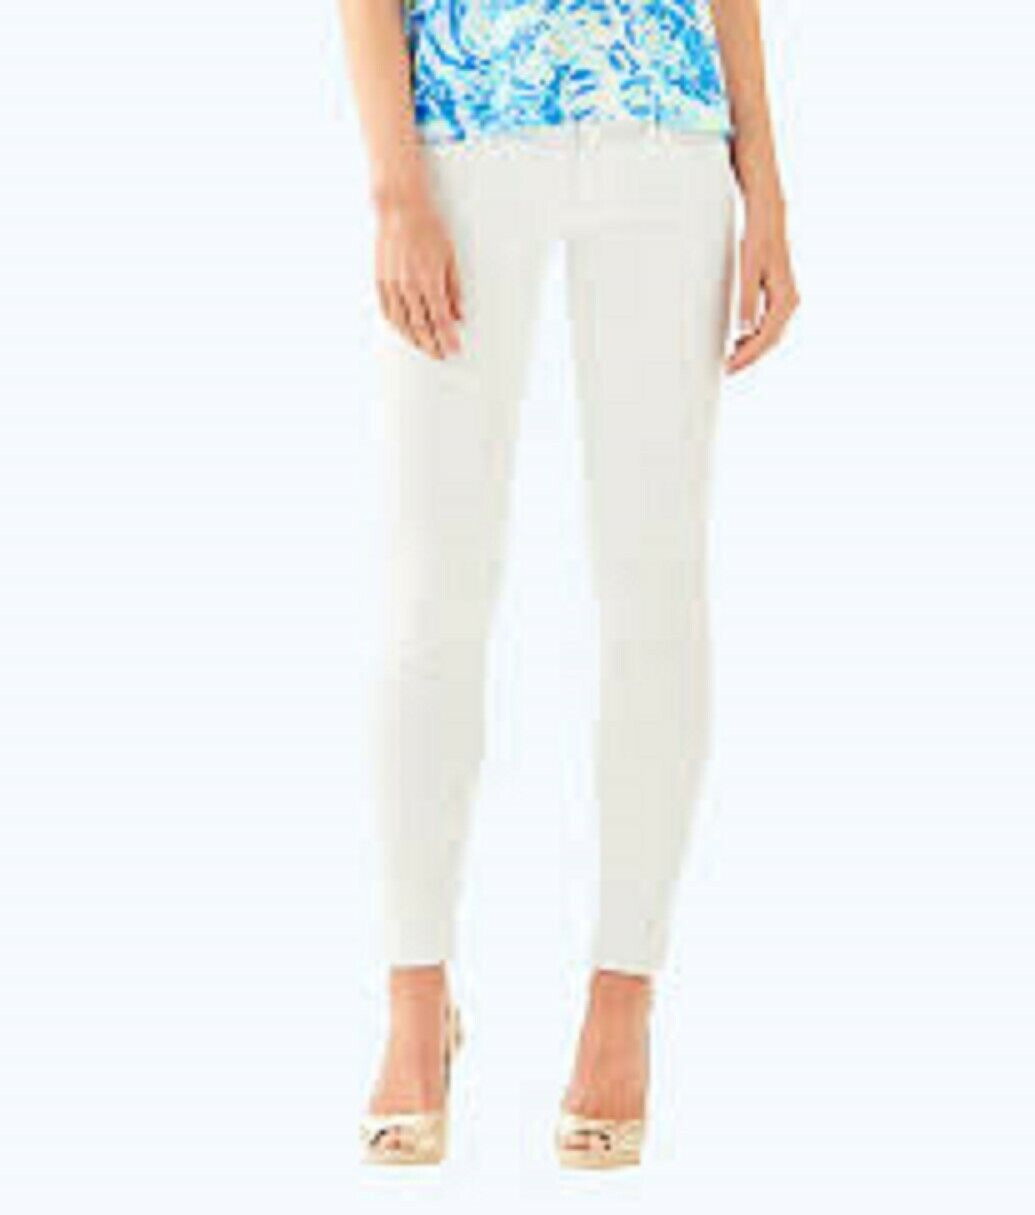 158 Lilly Pulitzer Worth Skinny Resort Blanc Jeans Taille 0